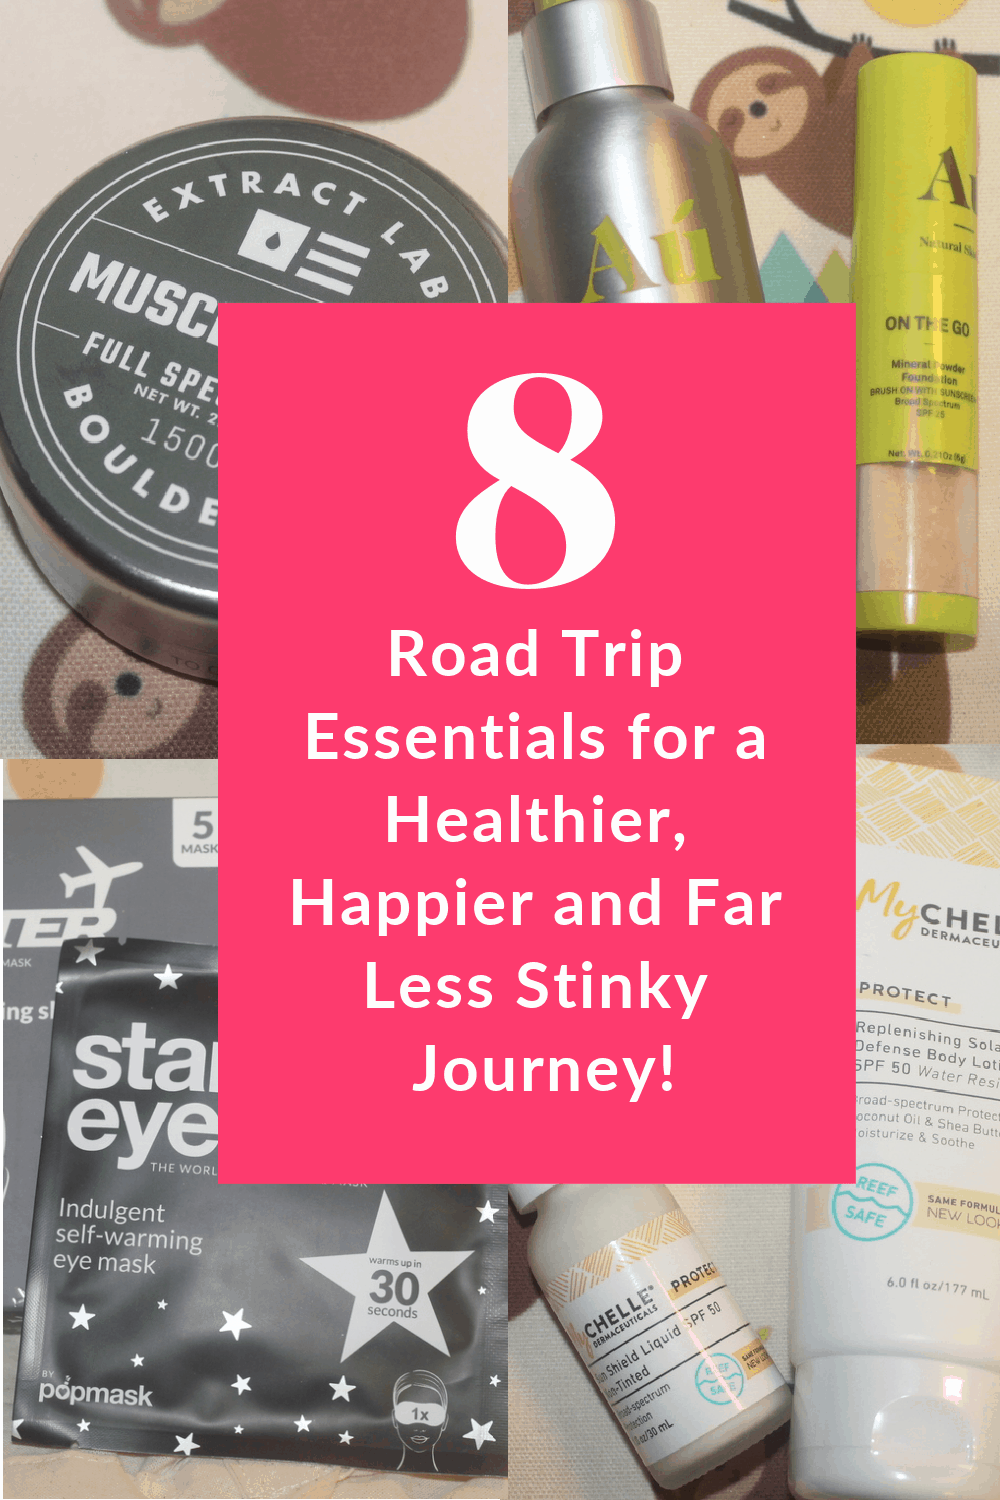 Before you hit the highway for your next road trip, make sure you pack these essentials! They'll keep you looking and feeling great (and a whole lot less stinky!). Check them out!